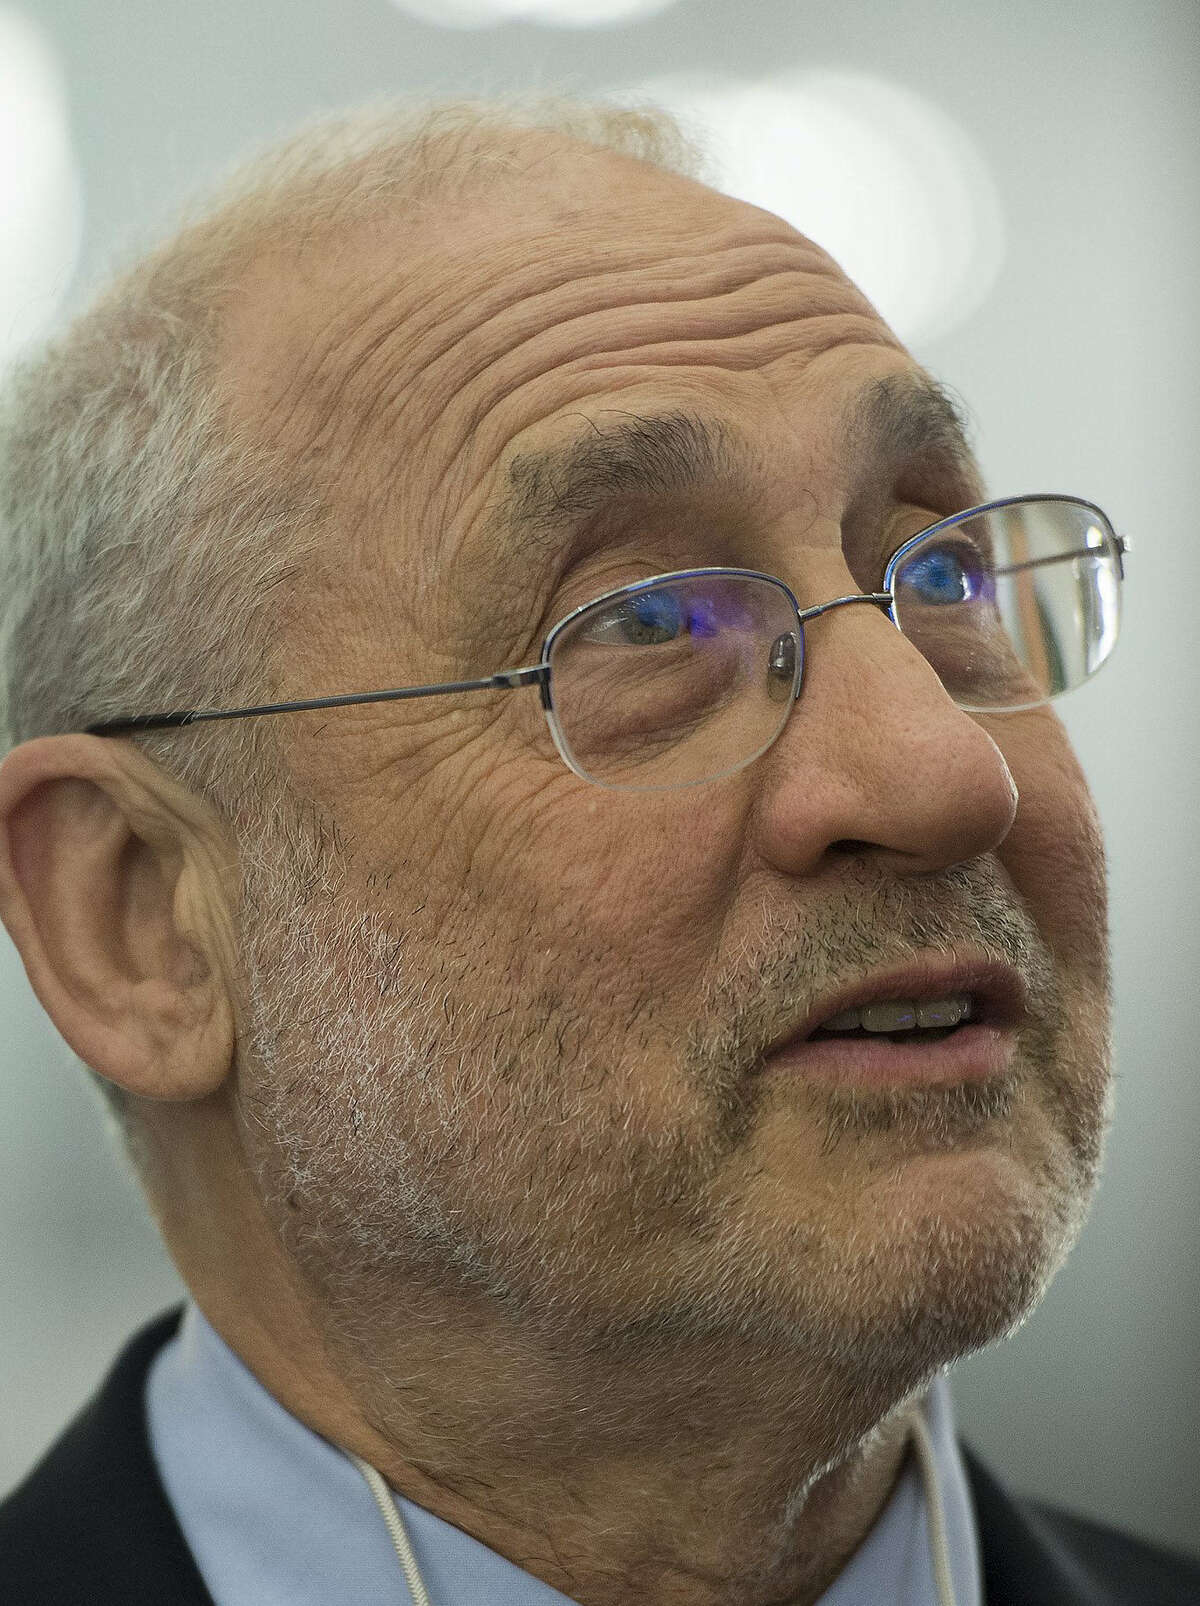 Economist Joseph Stiglitz makes eight observations about income inequality and makes recommendations.